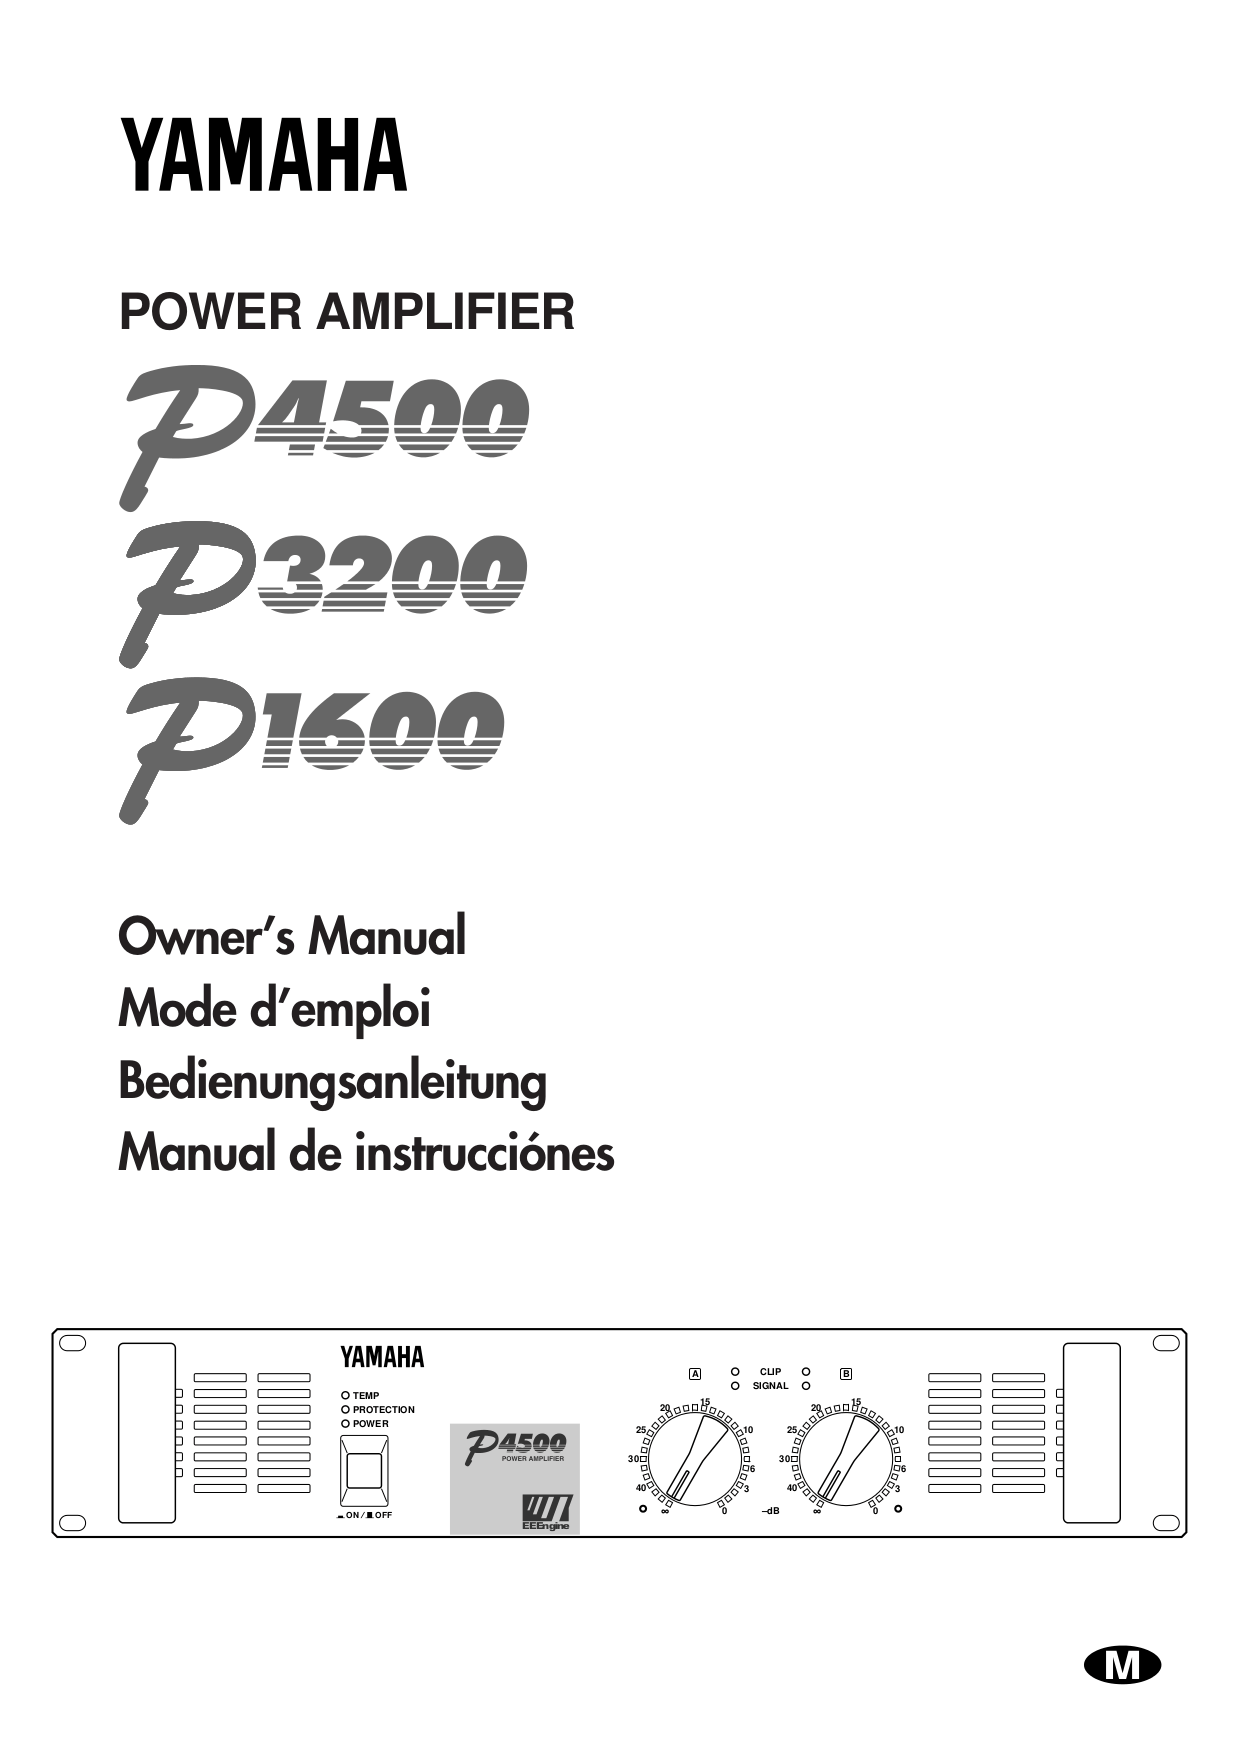 Download free pdf for Yamaha P4500 Amp manual